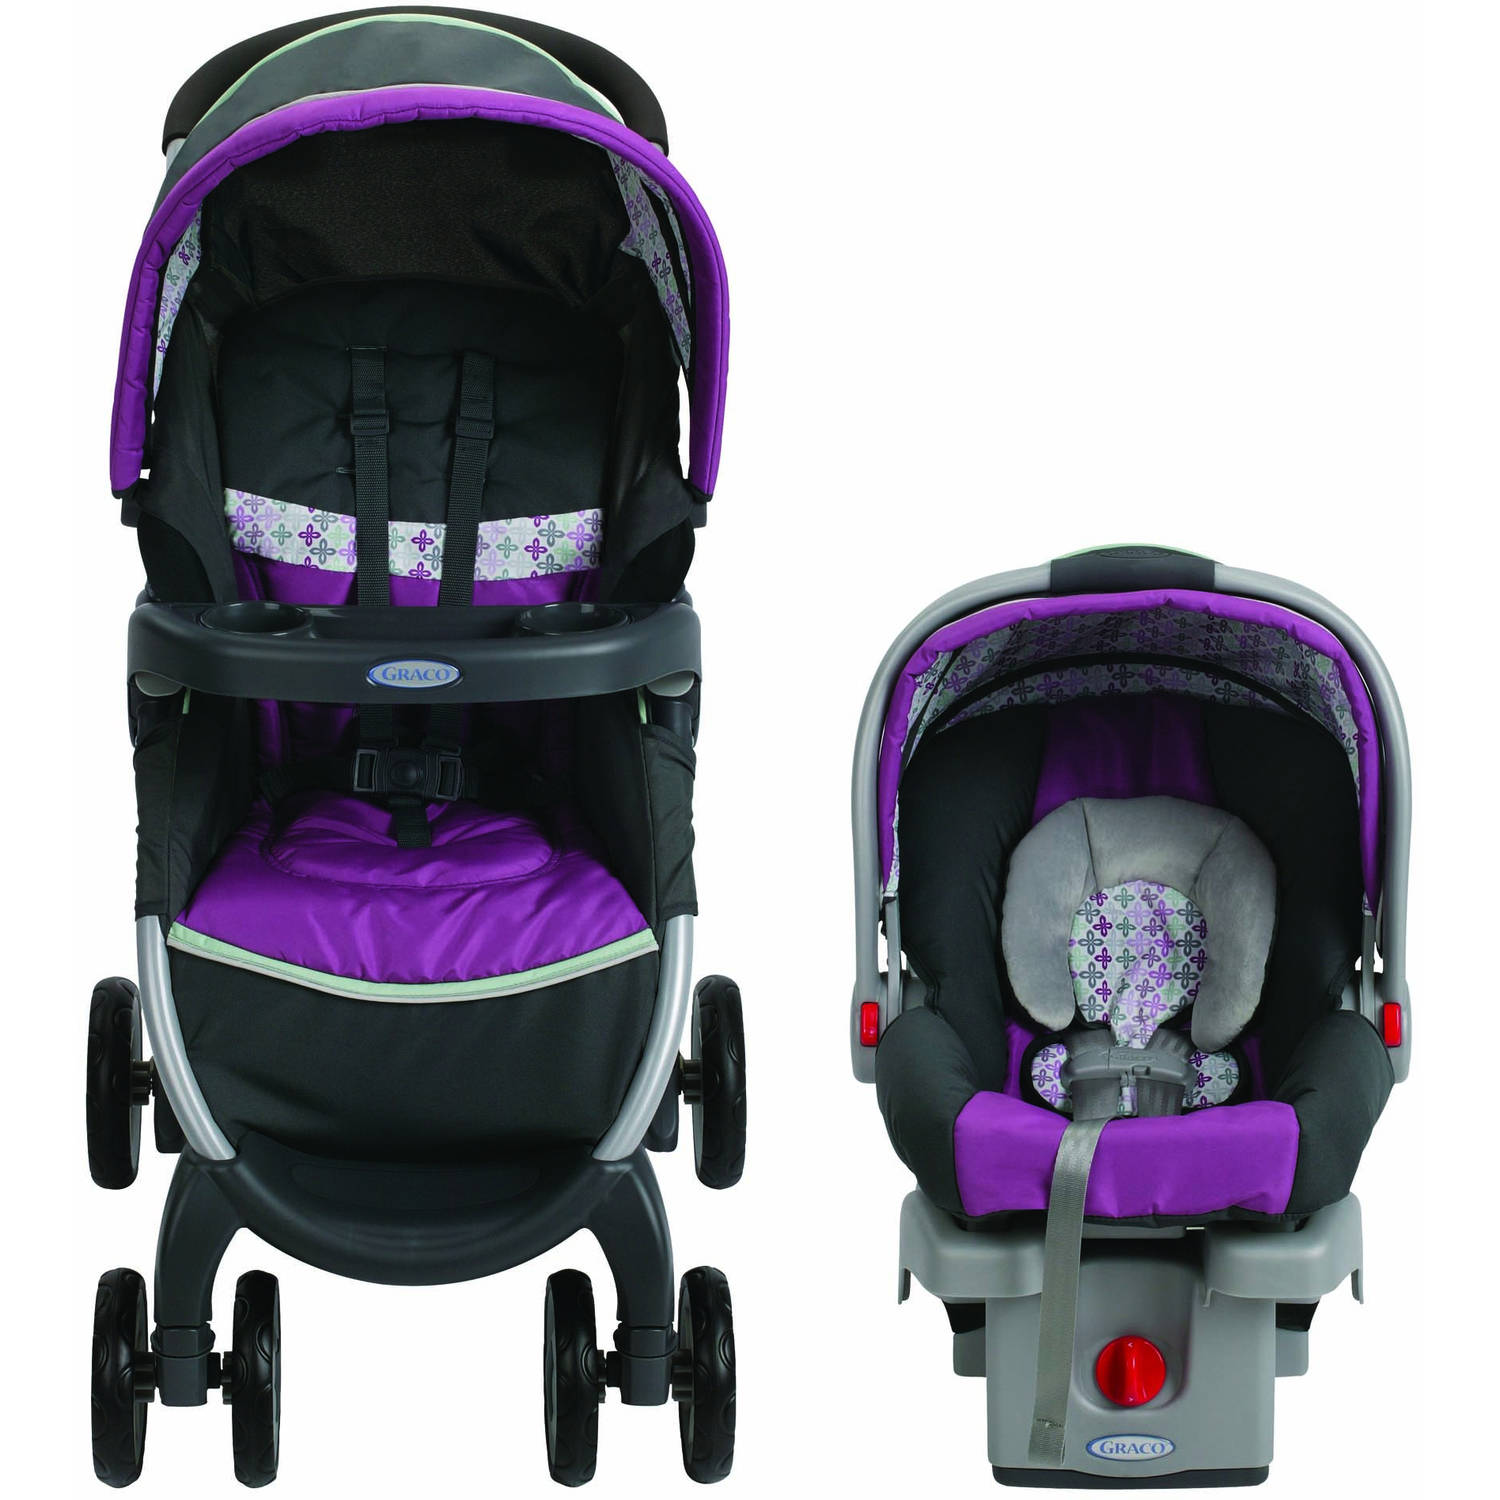 New Graco Fastaction Fold Click Travel System Car Seat Stroller